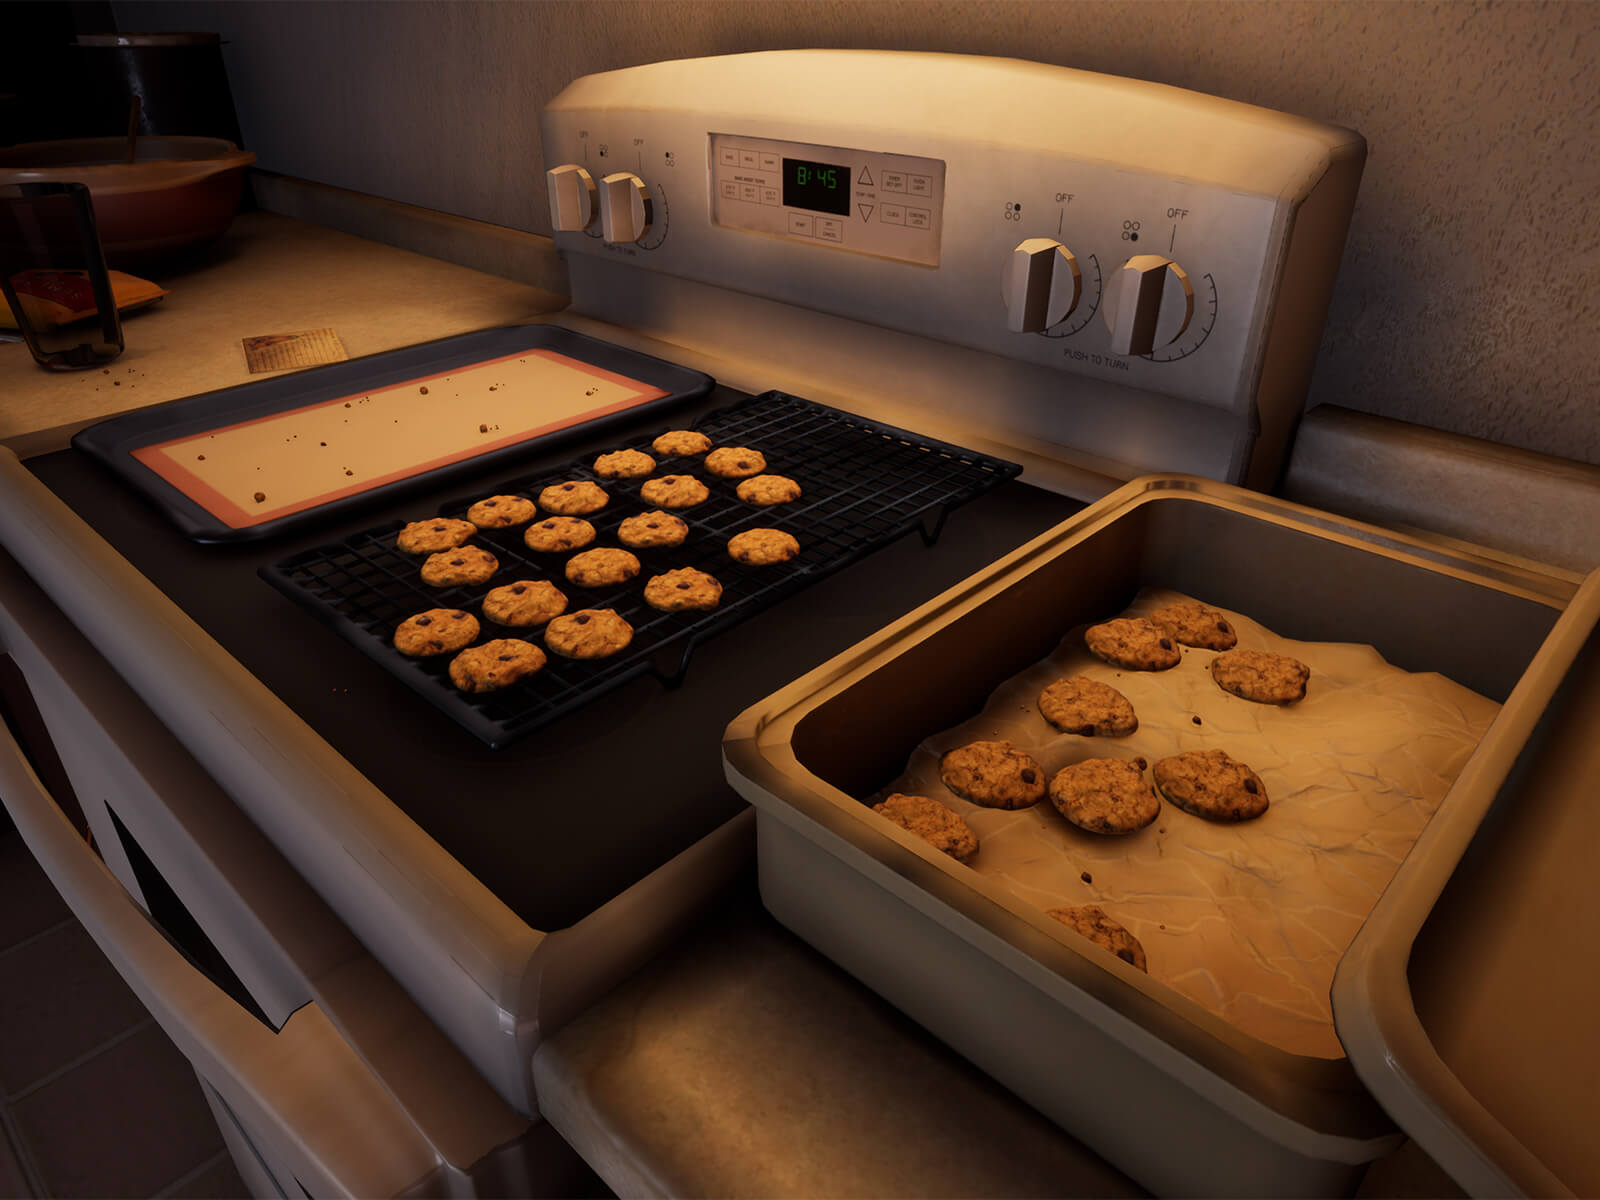 Chocolate chip cookies cooling on a rack on top of a stove